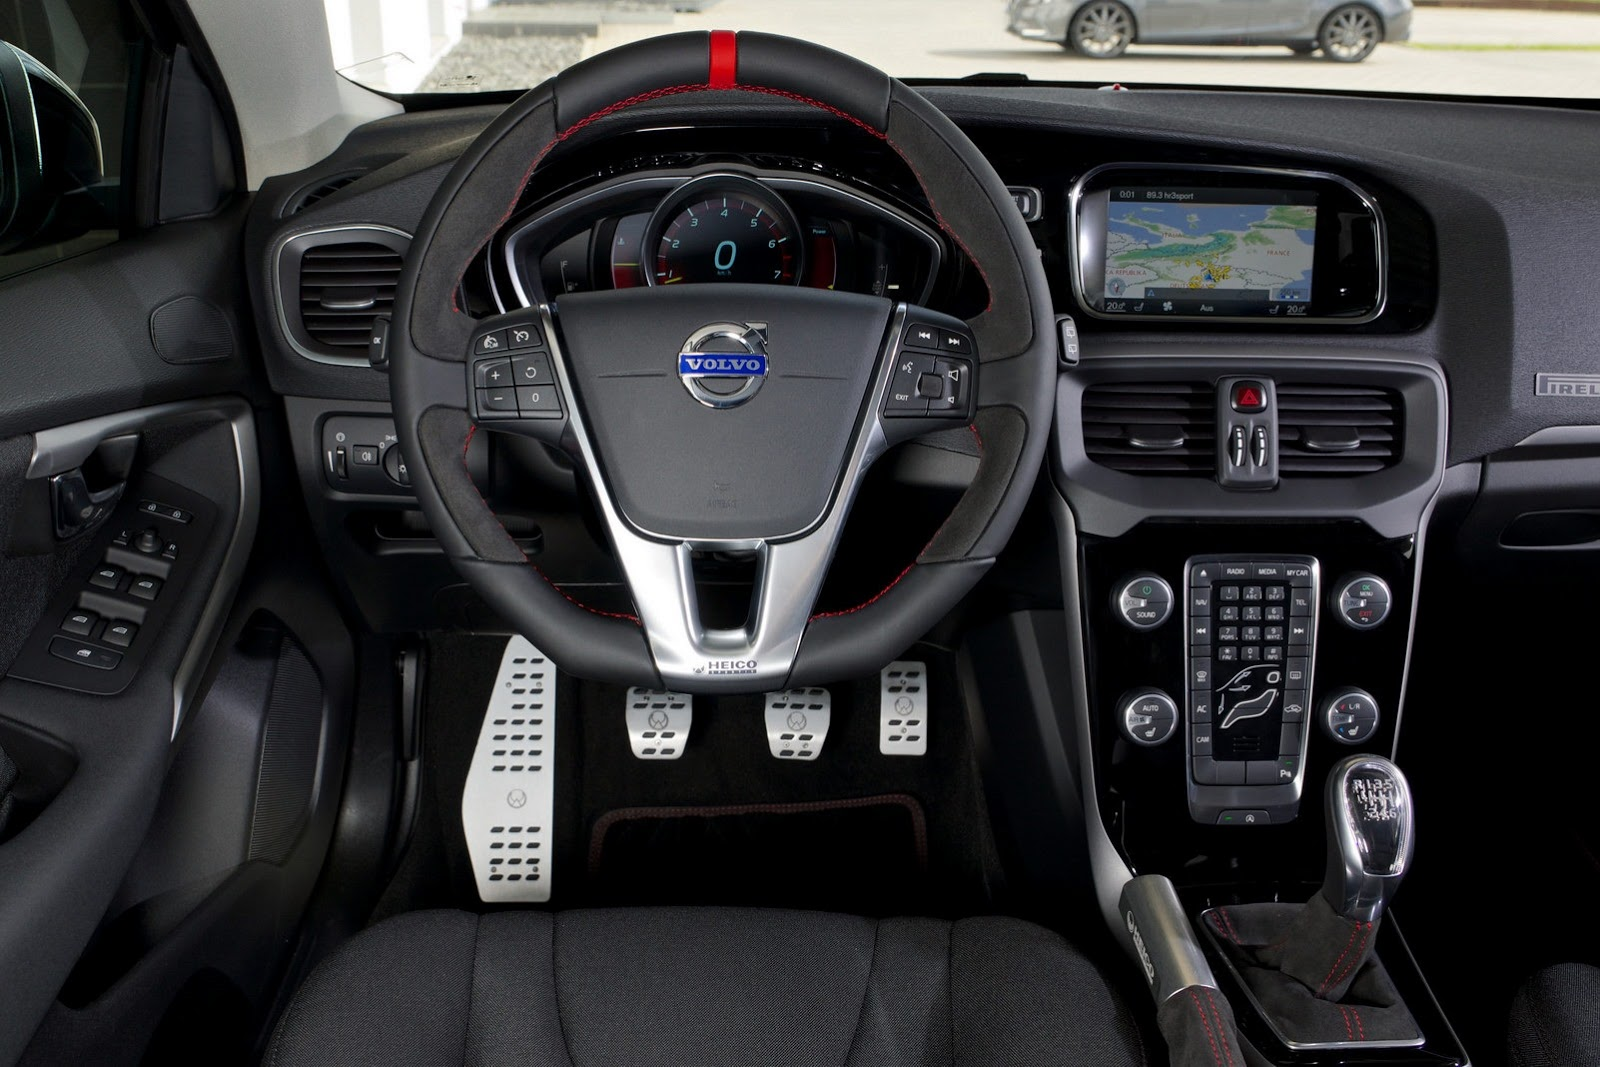 2016 Volvo Xc90 R Design Shows More Aggressive Design And 22 Inch Wheels Photo Gallery 100700 further Volvo Introduces Powerful And Efficient New Engines For V40 D4 And T5 Models Photo Gallery 77614 furthermore Volvo V40 Pirelli Edition By Heico Sportiv Photo Gallery 59493 together with 100518714 2016 Volvo Xc90 T6 Inscription Quick Drive July 2015 together with Lego Light Up Table. on 2015 volvo xc60 t6